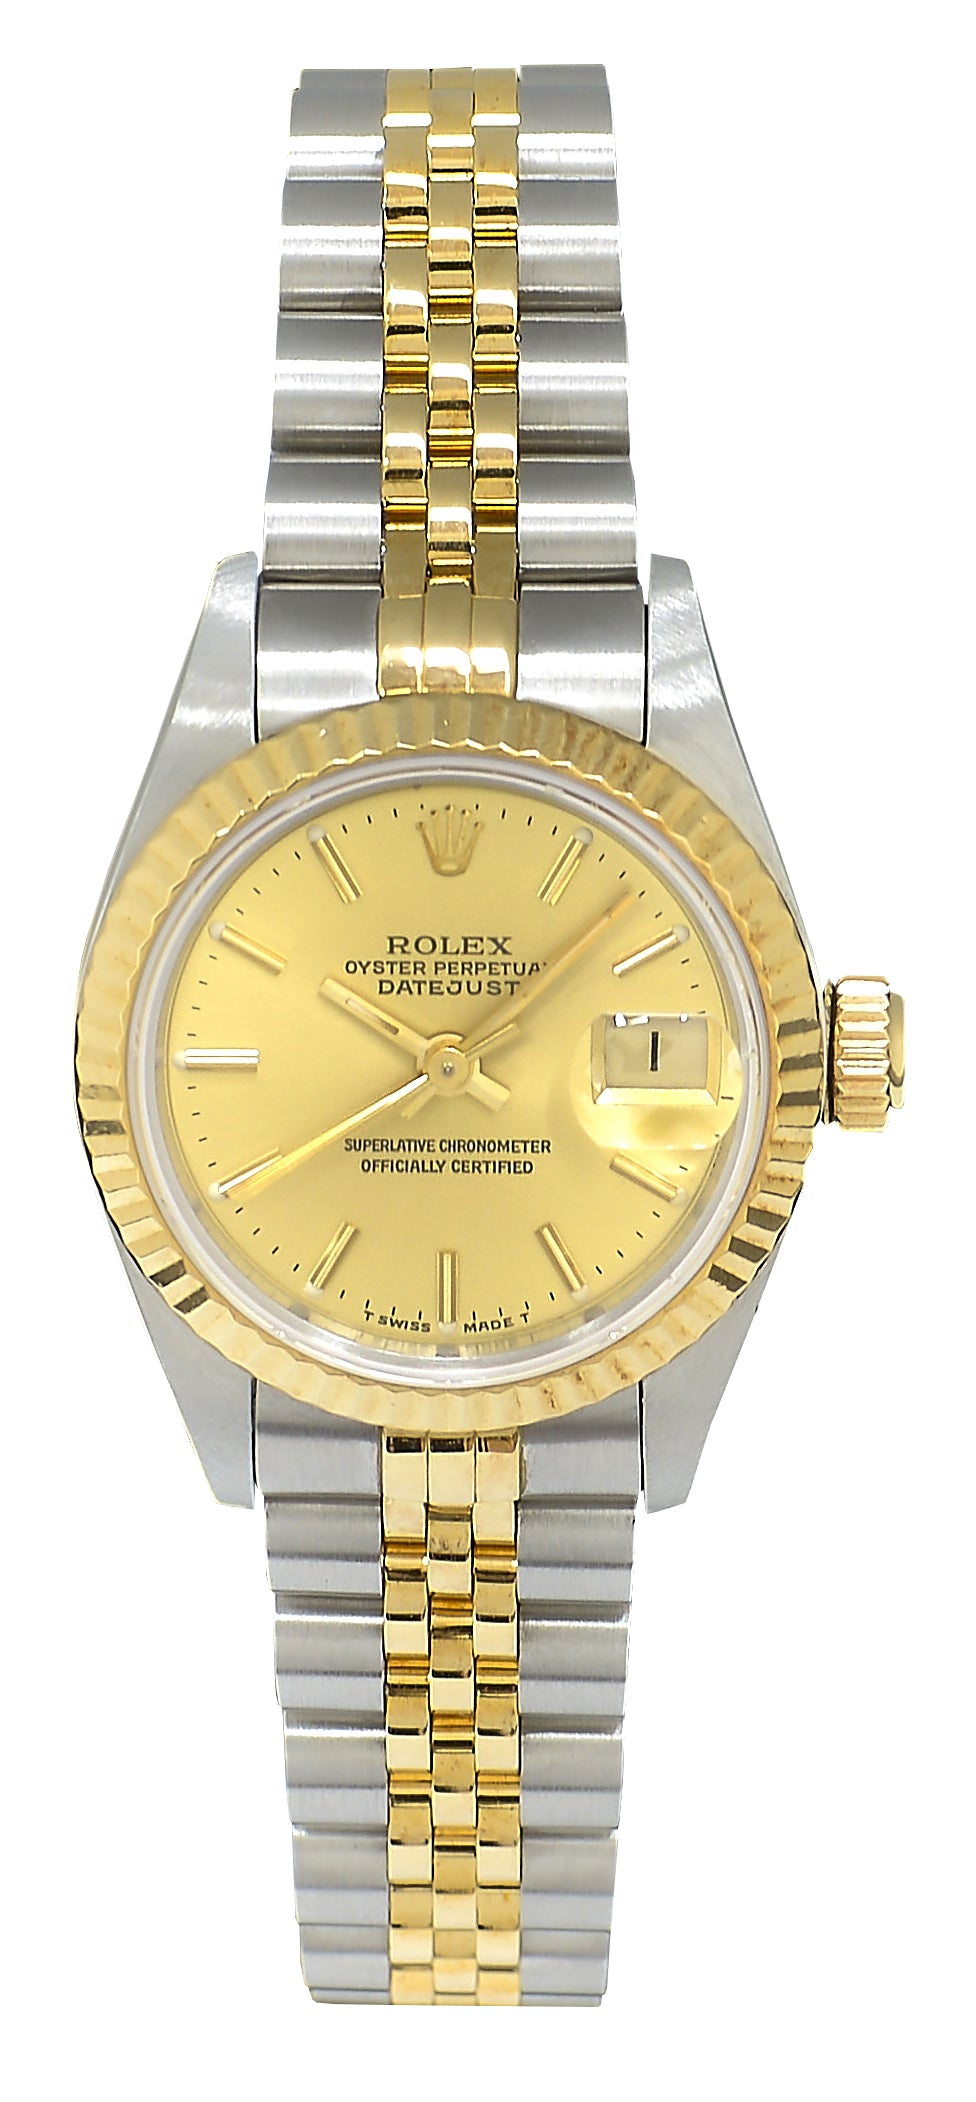 Rolex Datejust Ladies Bimetal with Champagne Dial, 69173